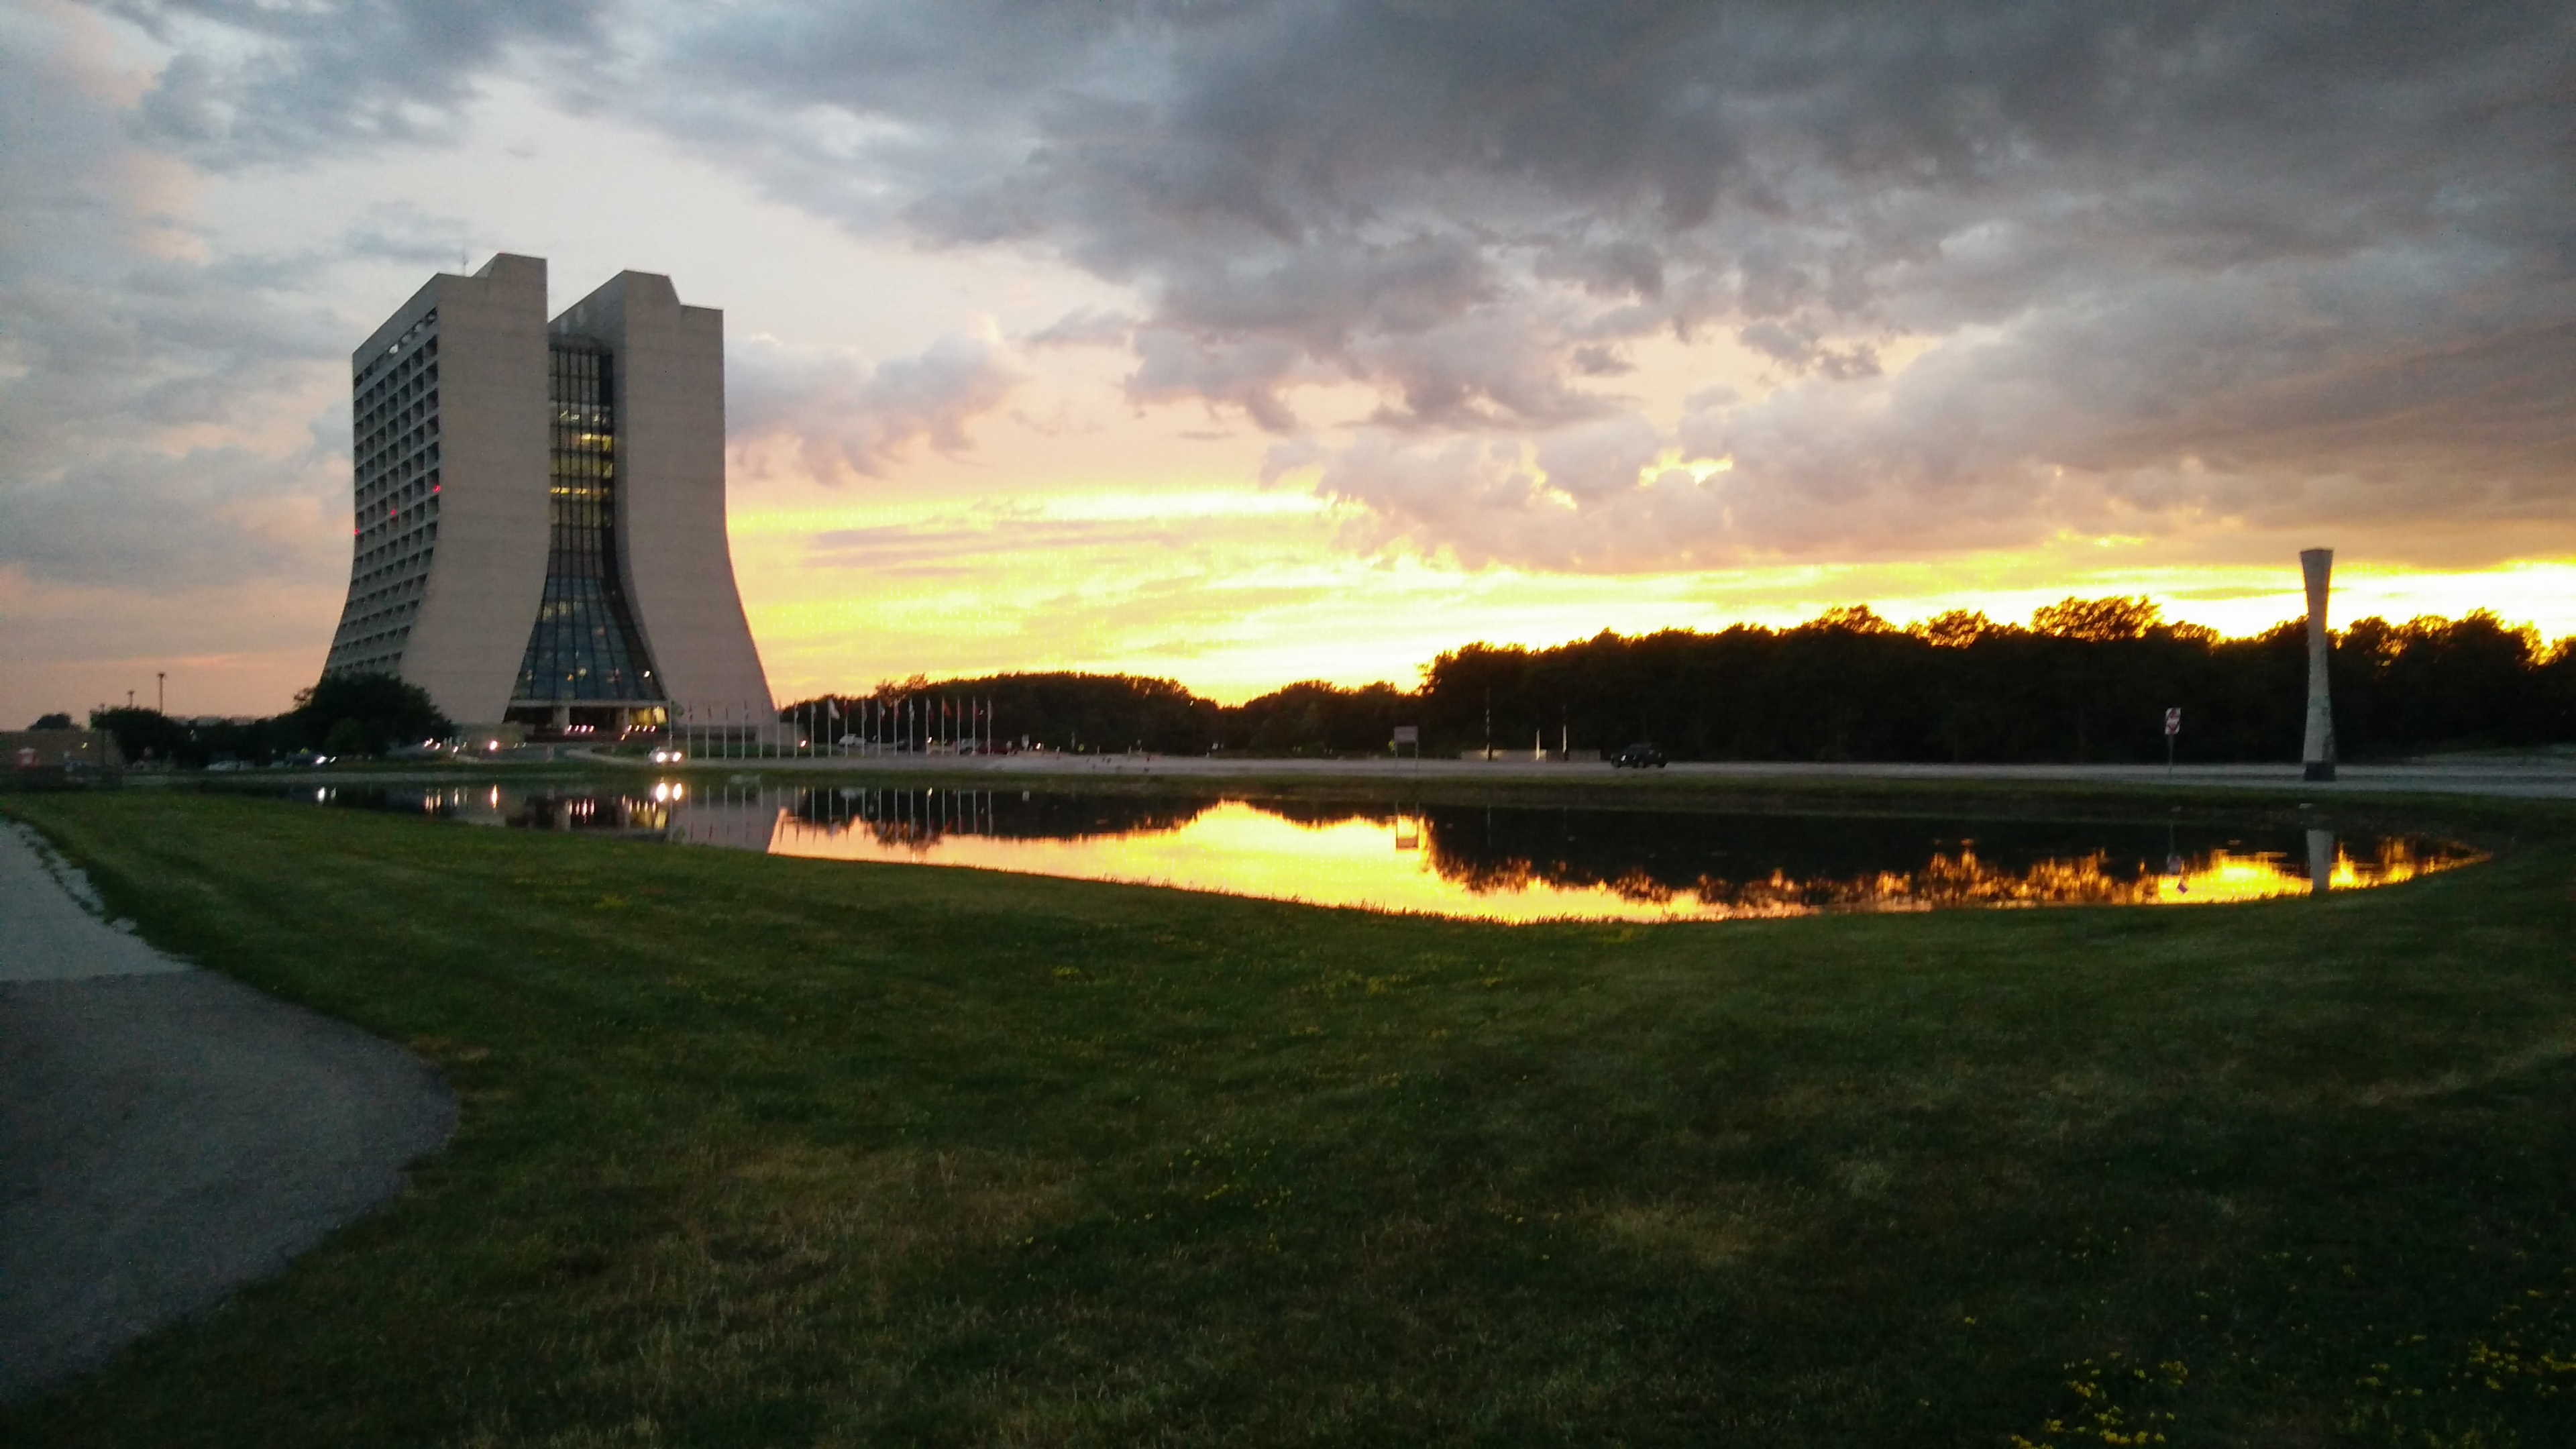 (2/4) nature, landscape, sky, building, Wilson Hall, cloud, sunset Photo: Piyush Jain